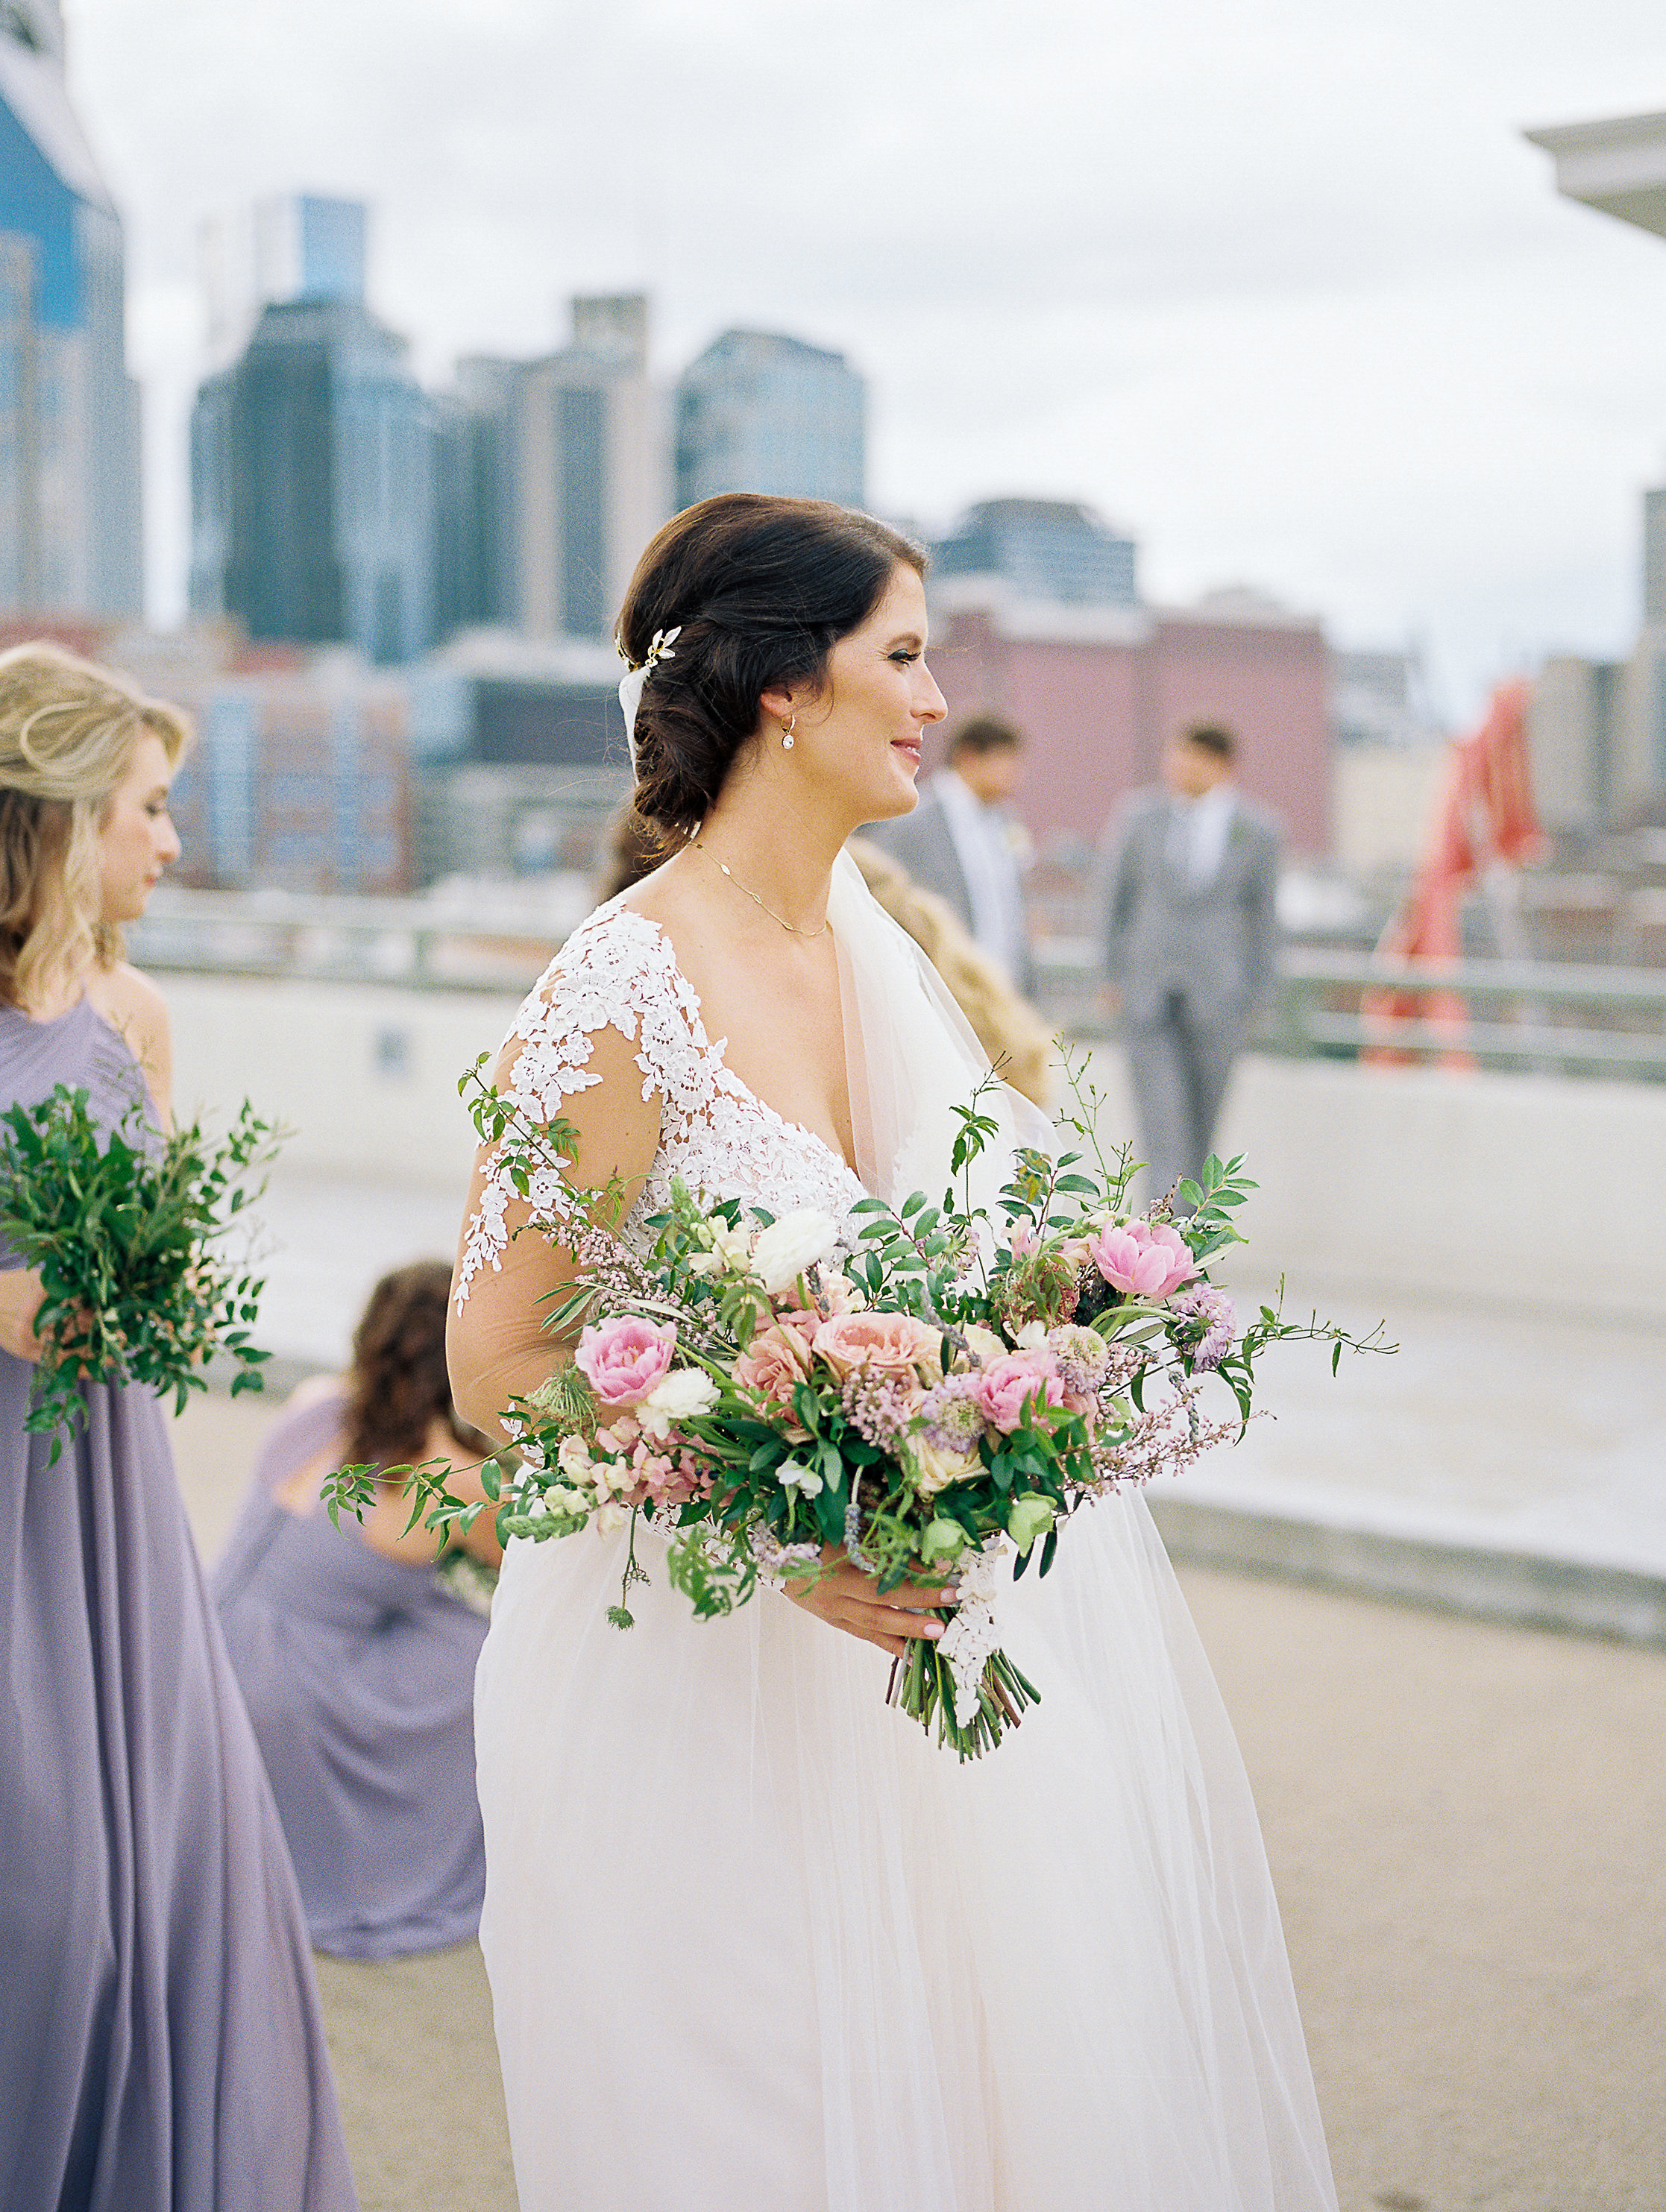 Downtown Nashville Wedding Floral Design at Cannery One